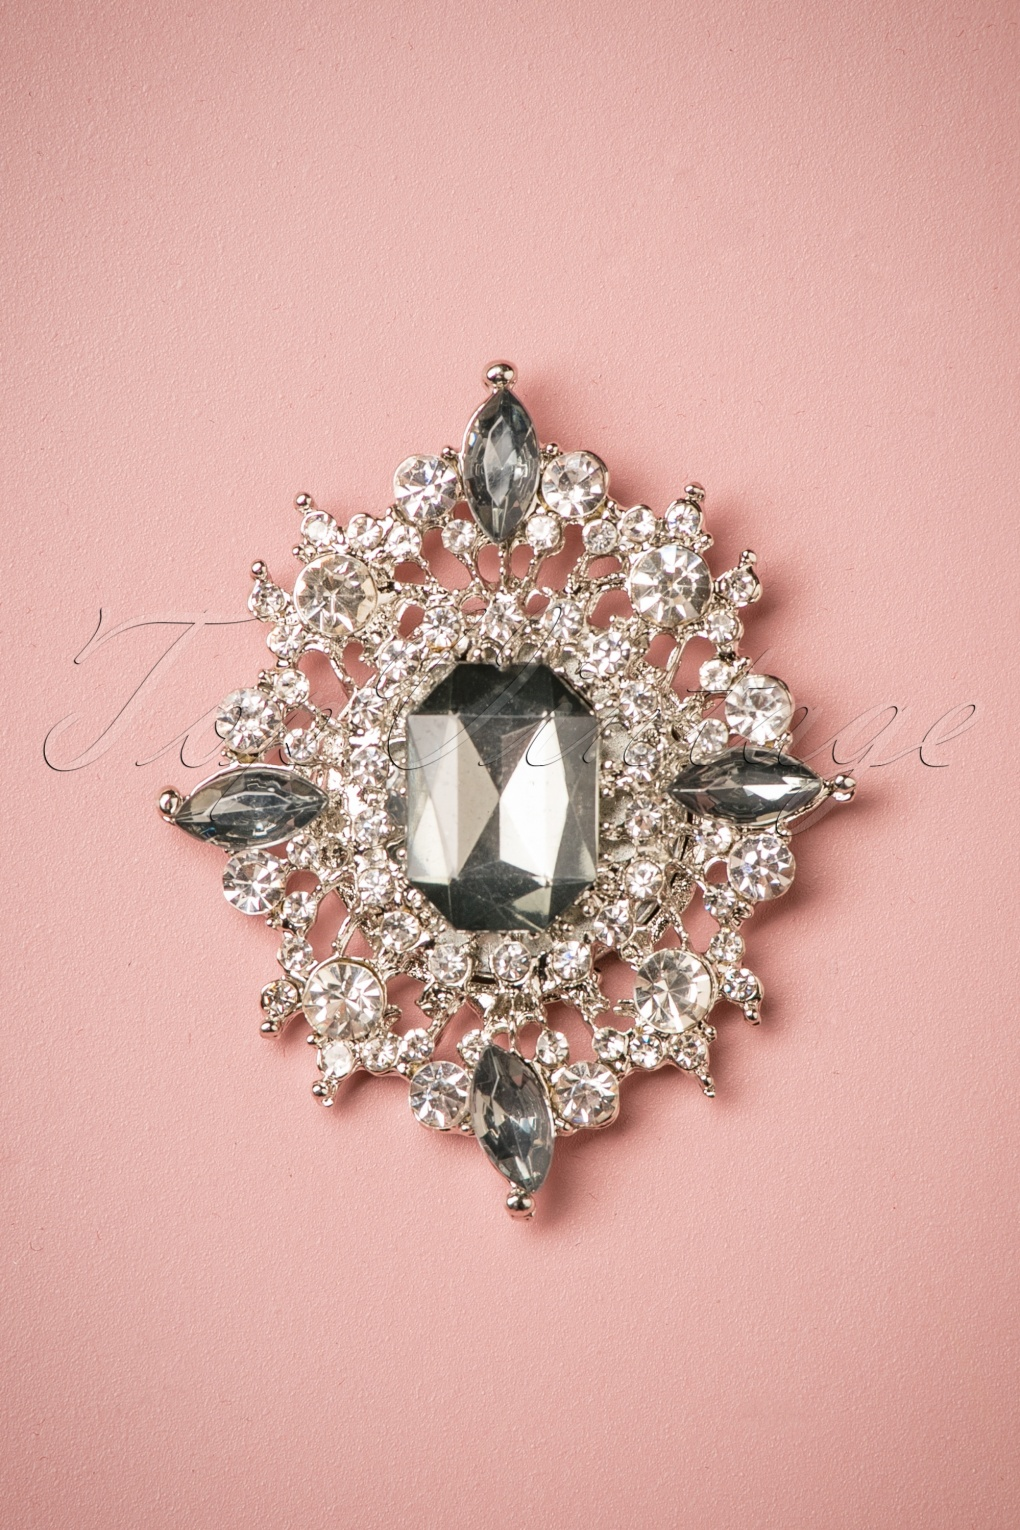 50s Jewelry: Earrings, Necklace, Brooch, Bracelet 50s Diamond Explosion Brooch in Grey £13.26 AT vintagedancer.com